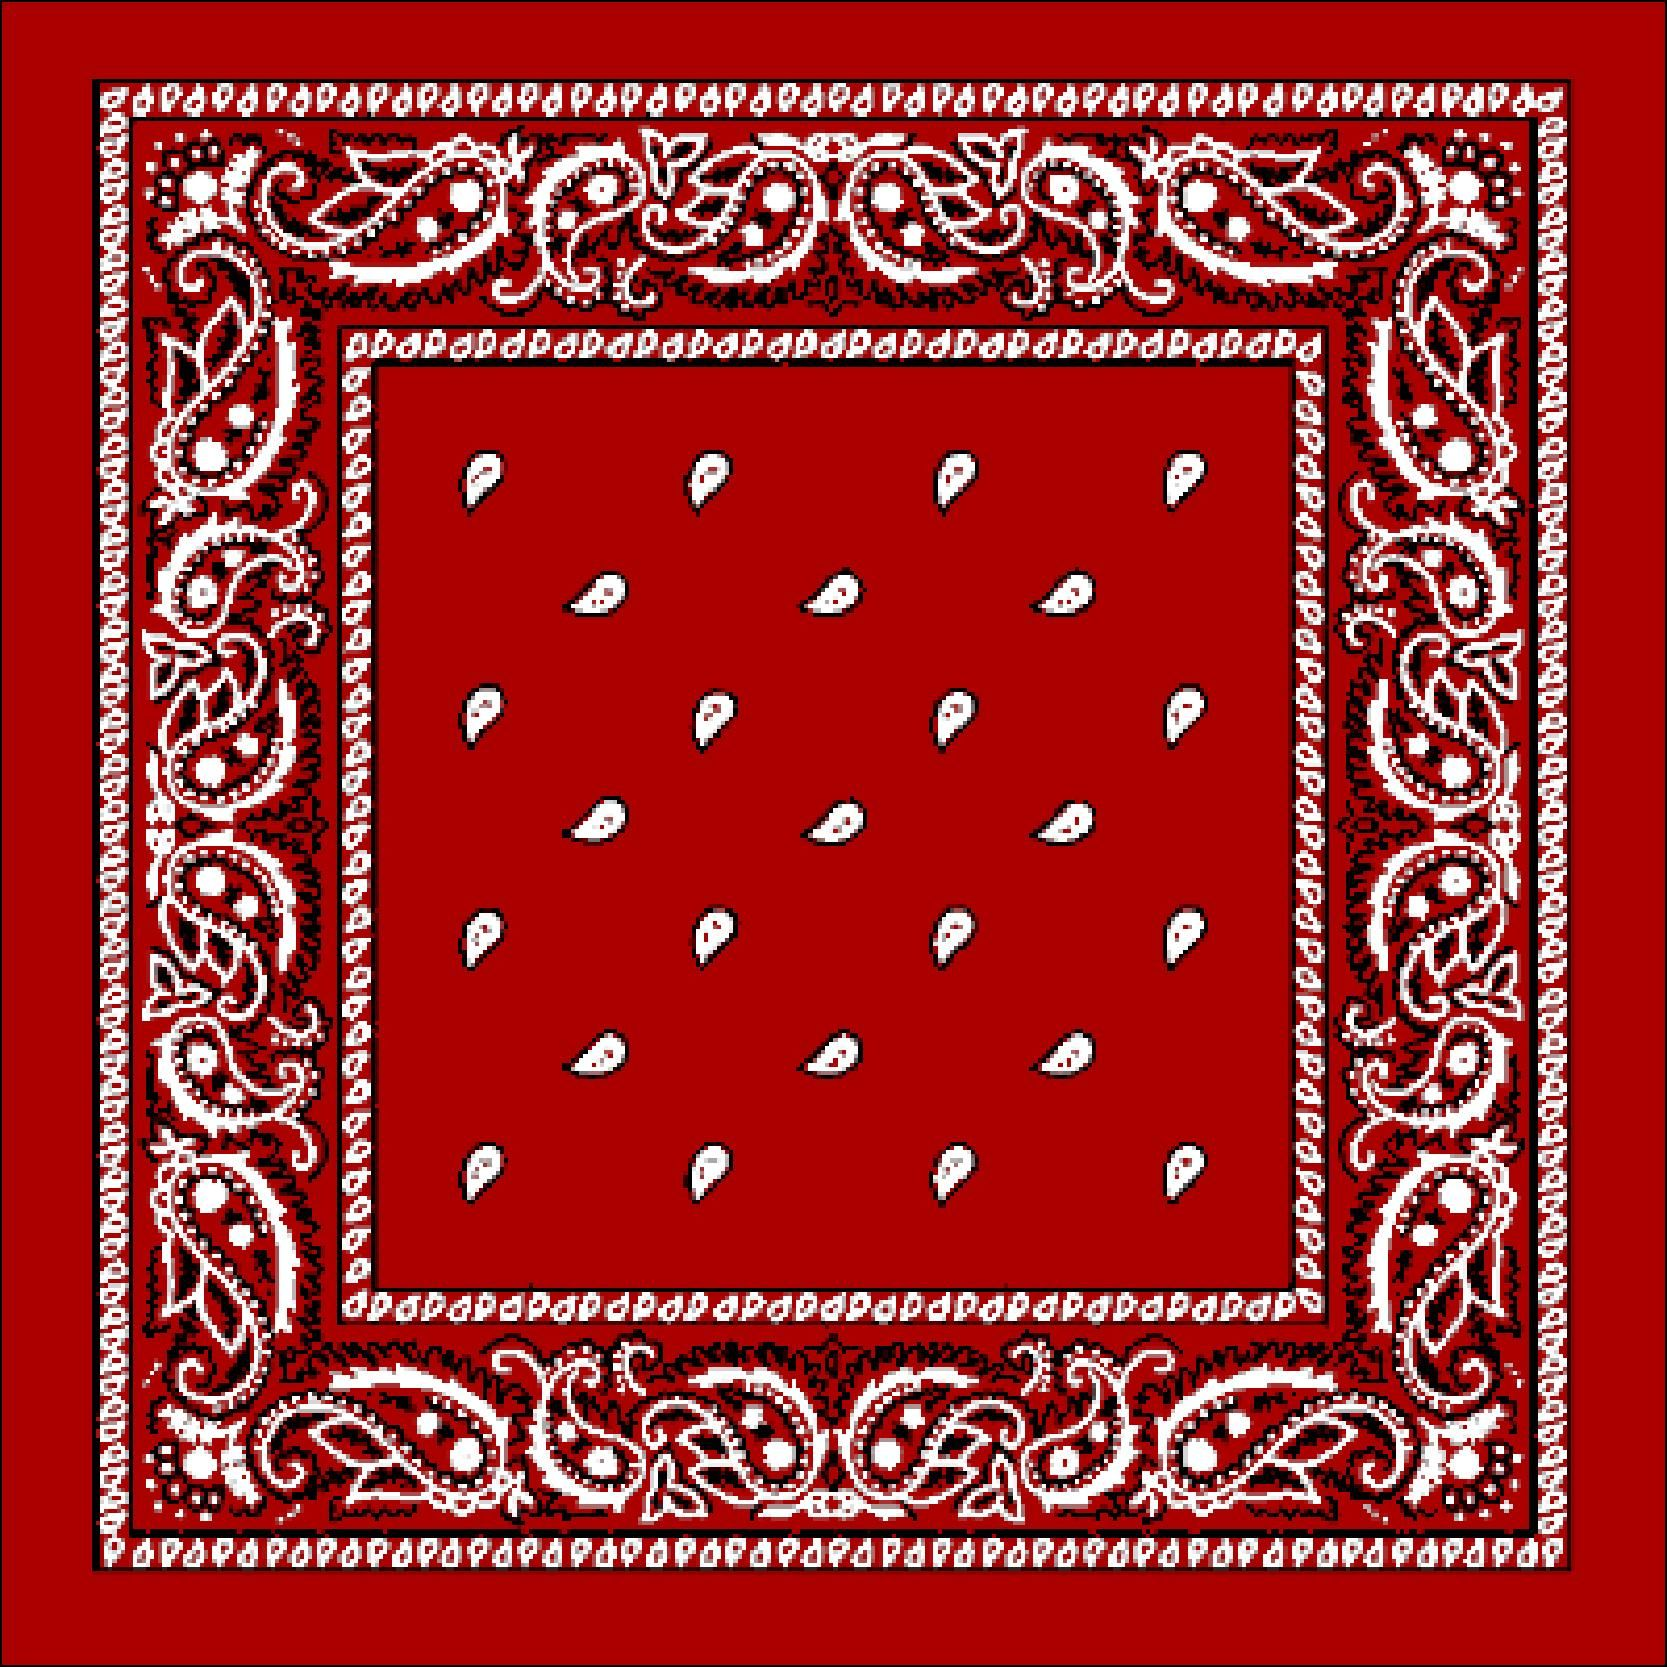 1667x1667 Red Bandana Wallpaper ✓ Best HD Wallpaper